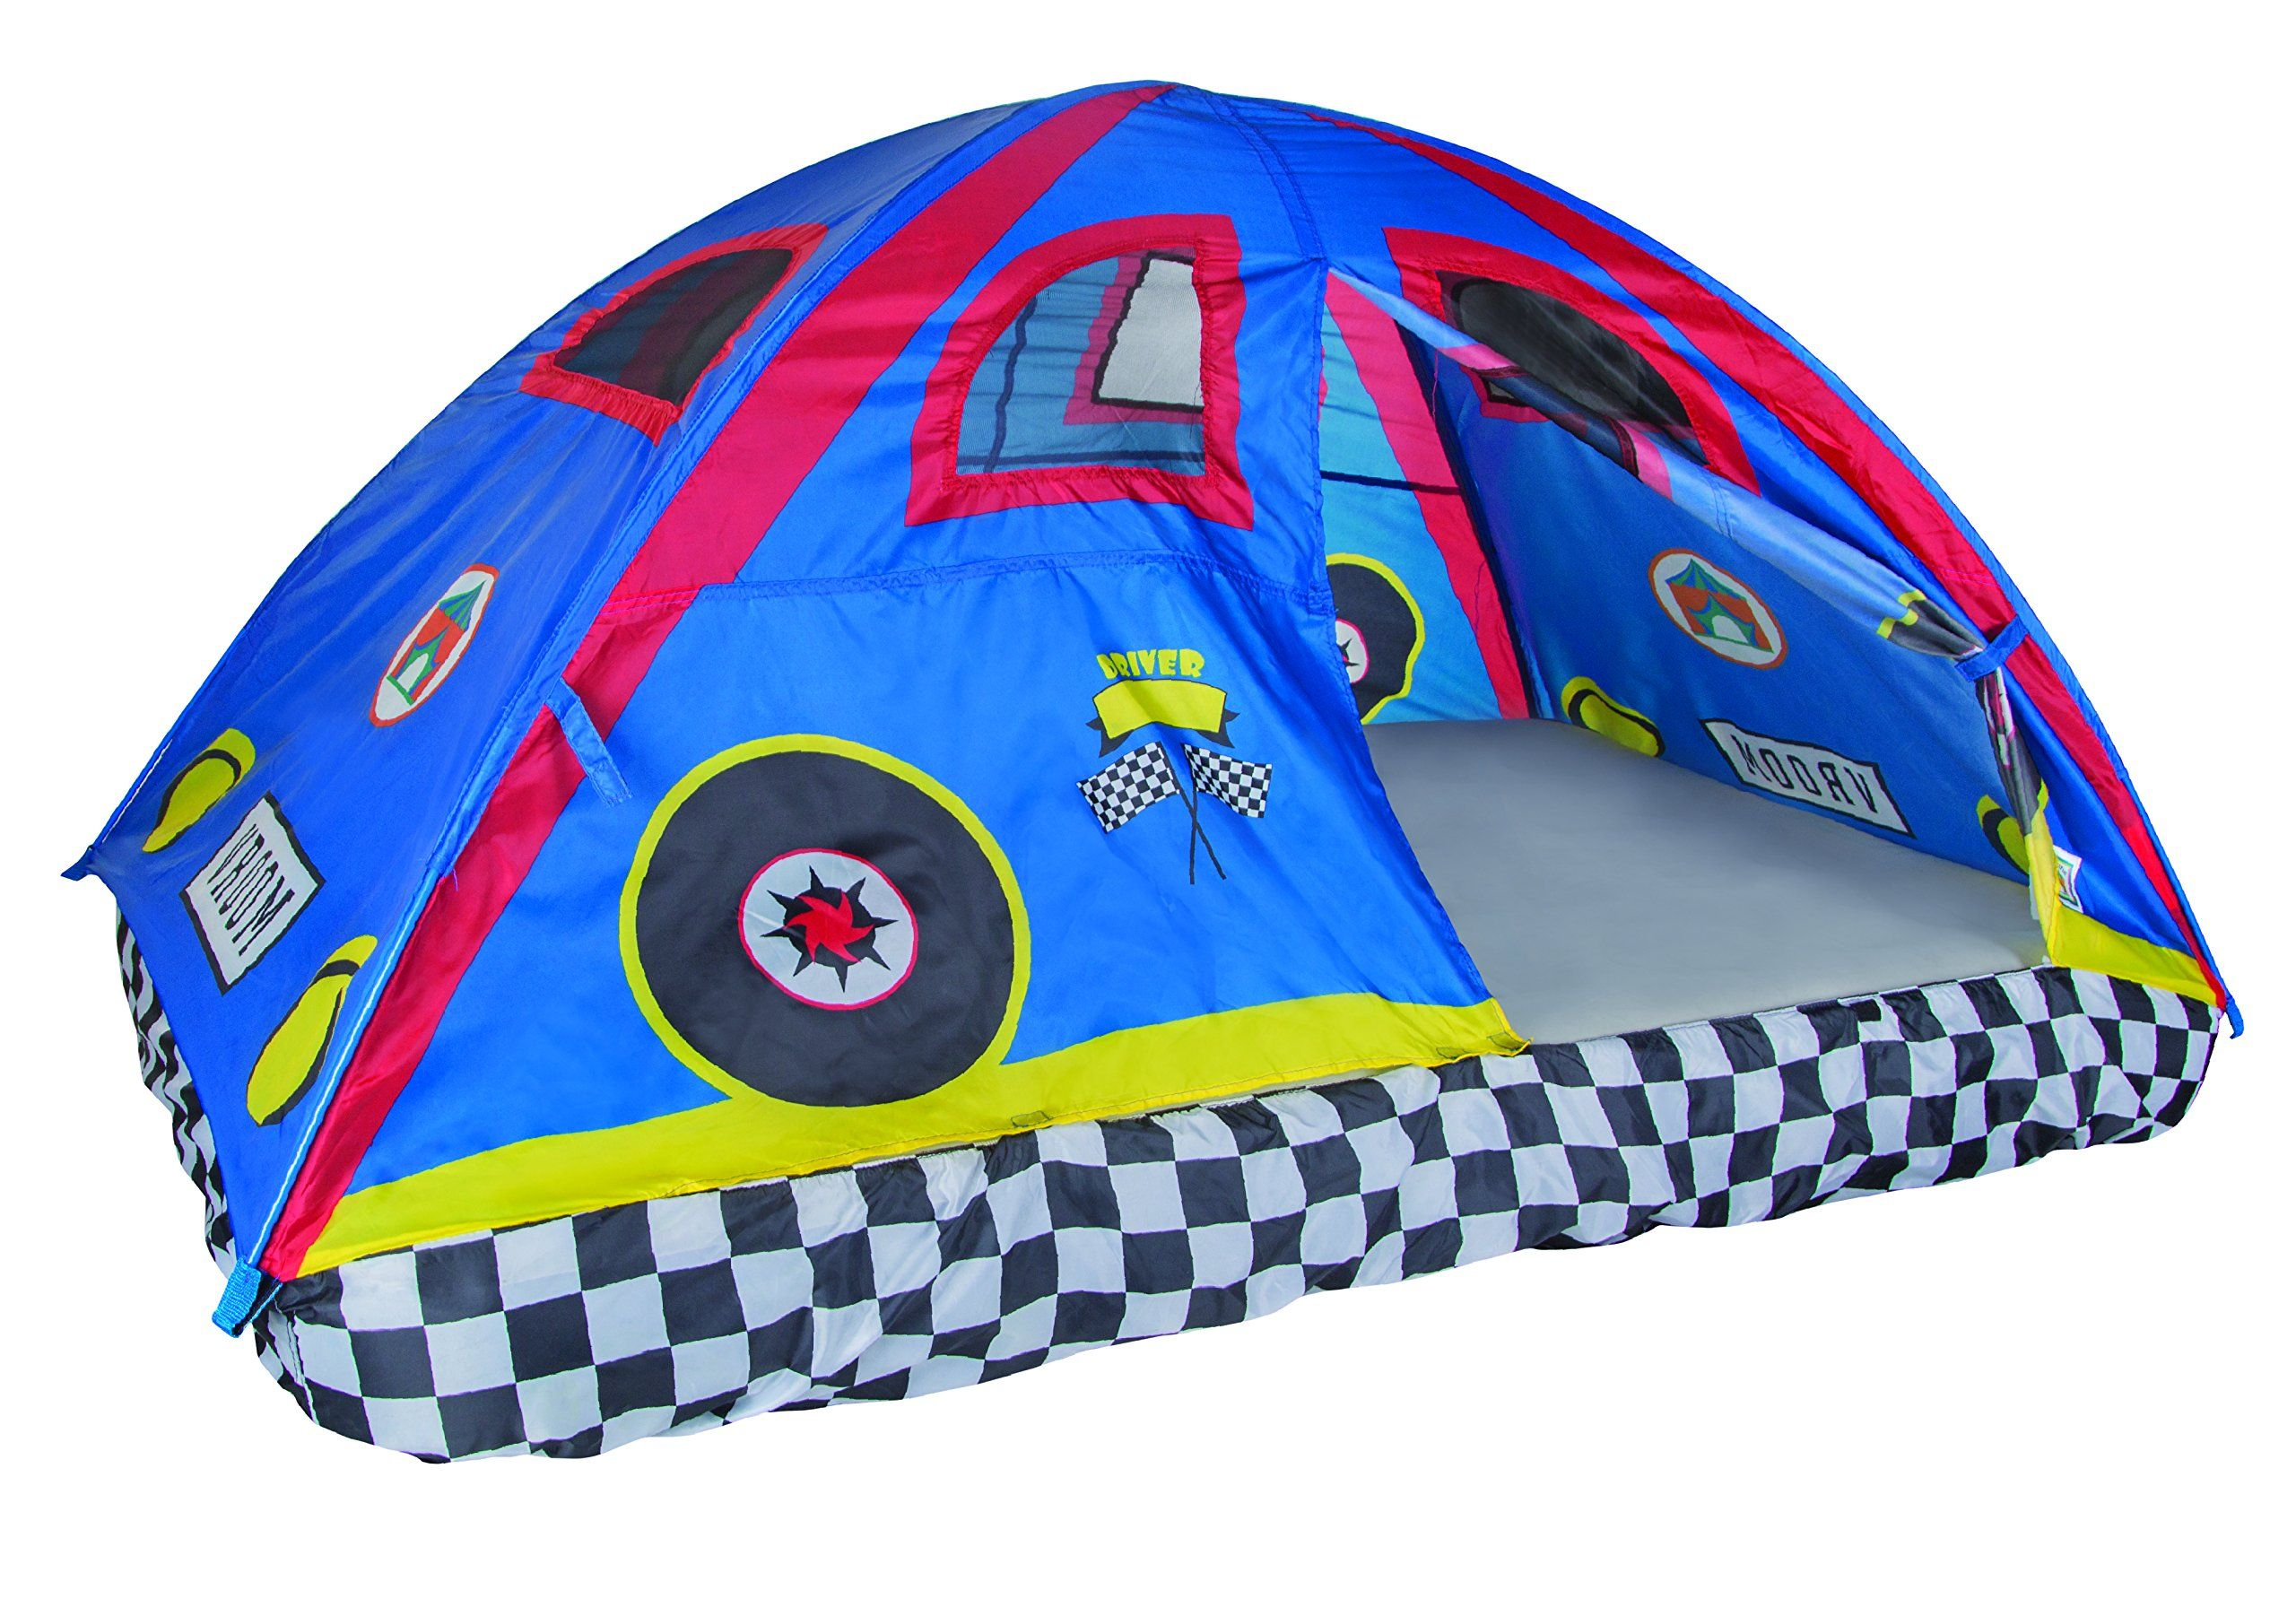 Pacific Play Tents Kids Rad Racer Bed Tent Playhouse For Full Size